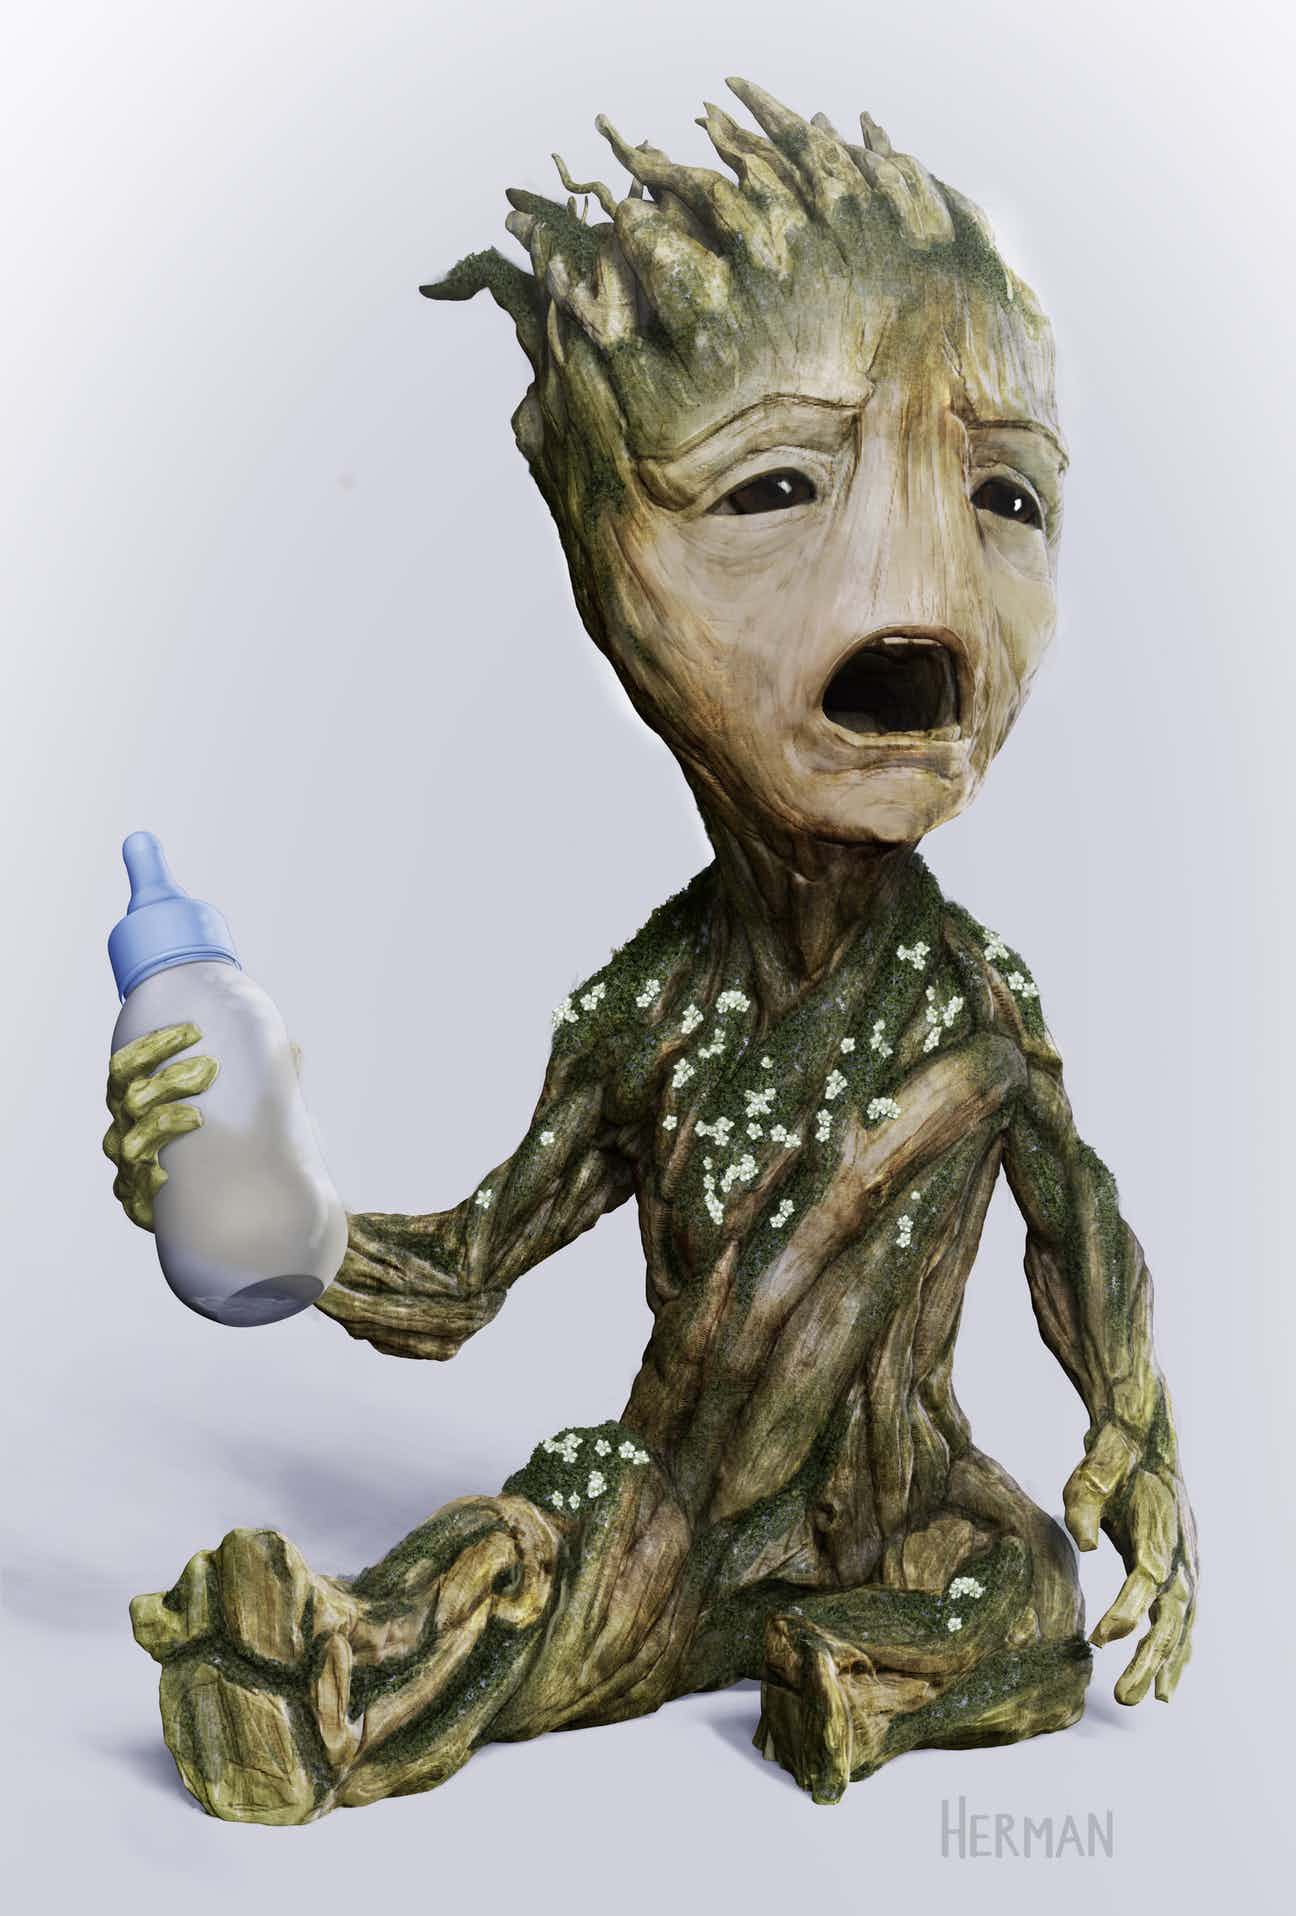 Marvel Avengers 3d Wallpaper Guardians Of The Galaxy Vol 2 Baby Groot Concept Art Will